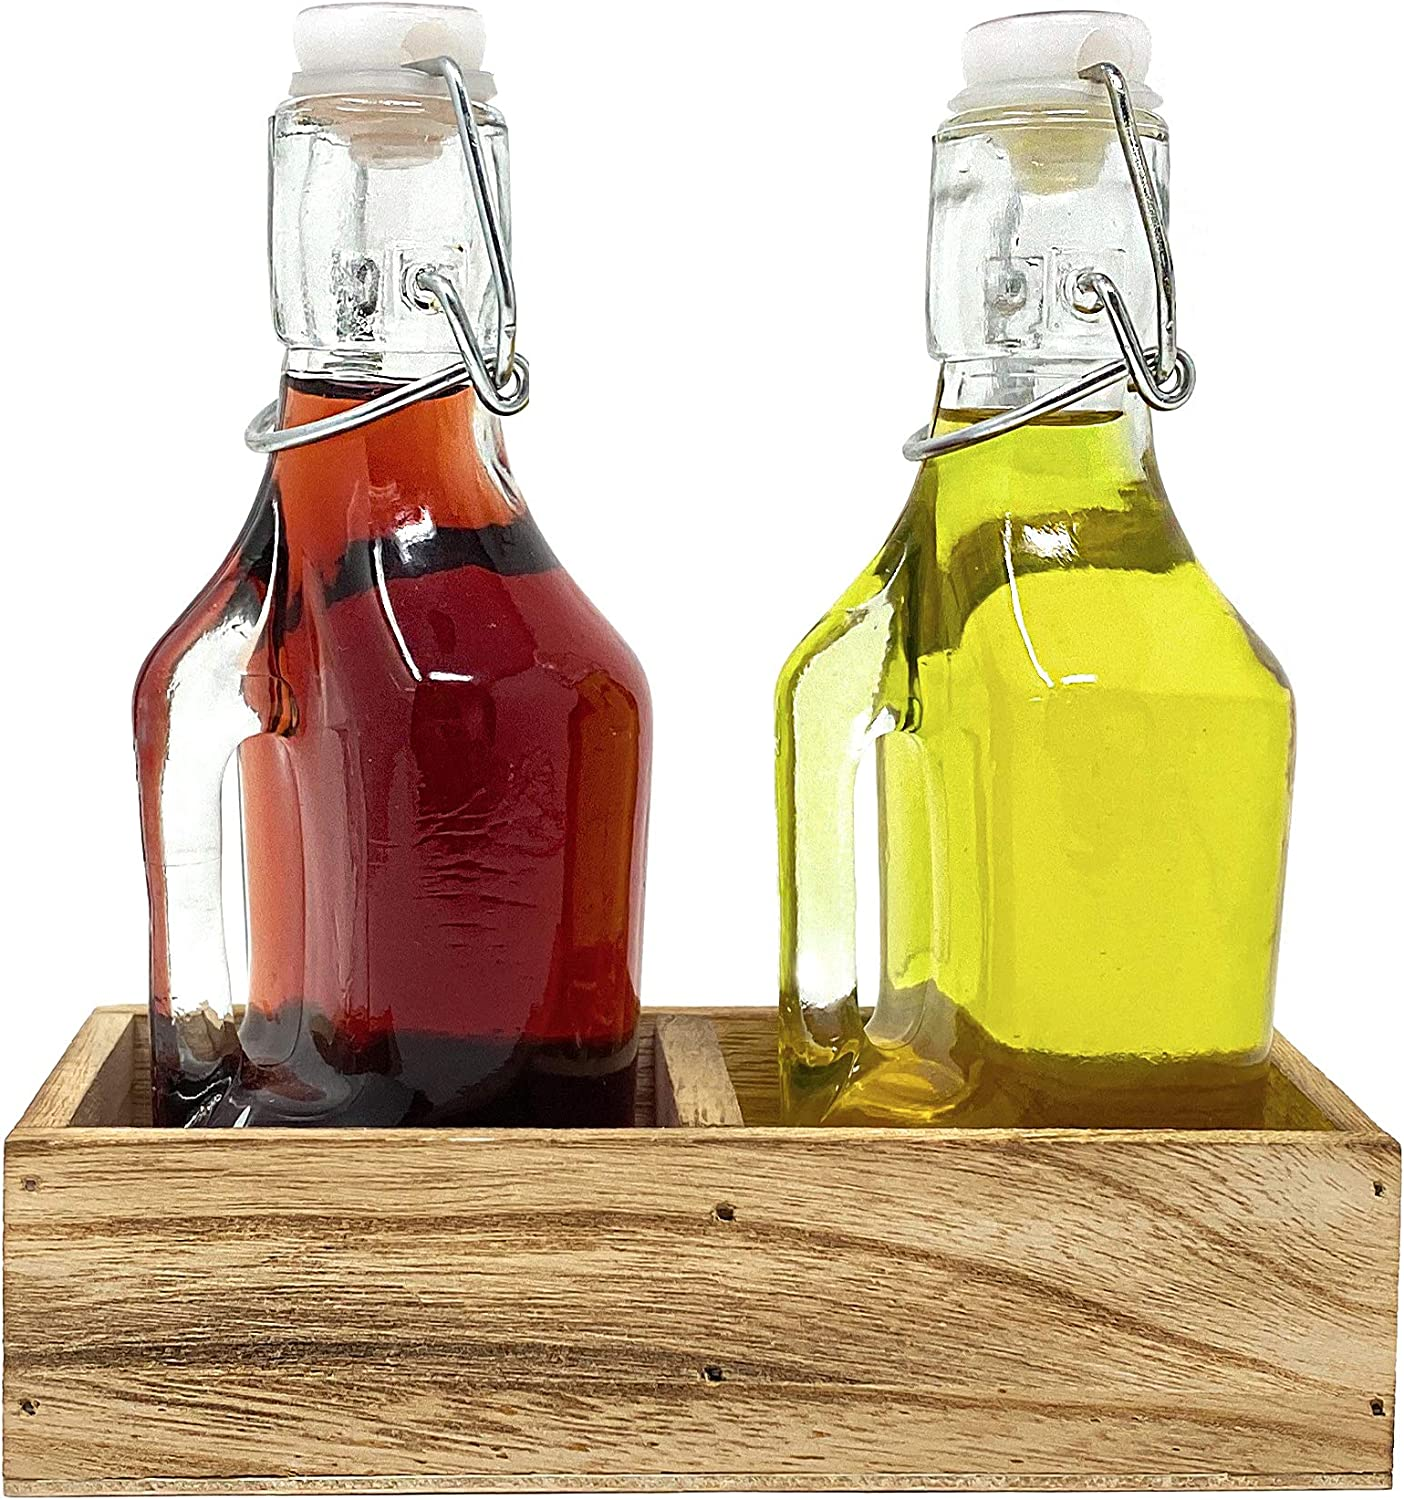 Oil and Vinegar Dispenser Set Cruet Bottles with Swing Top and Wood Caddy for Salad Dressing Condiments, Rustic and Farmhouse Kitchen Decor